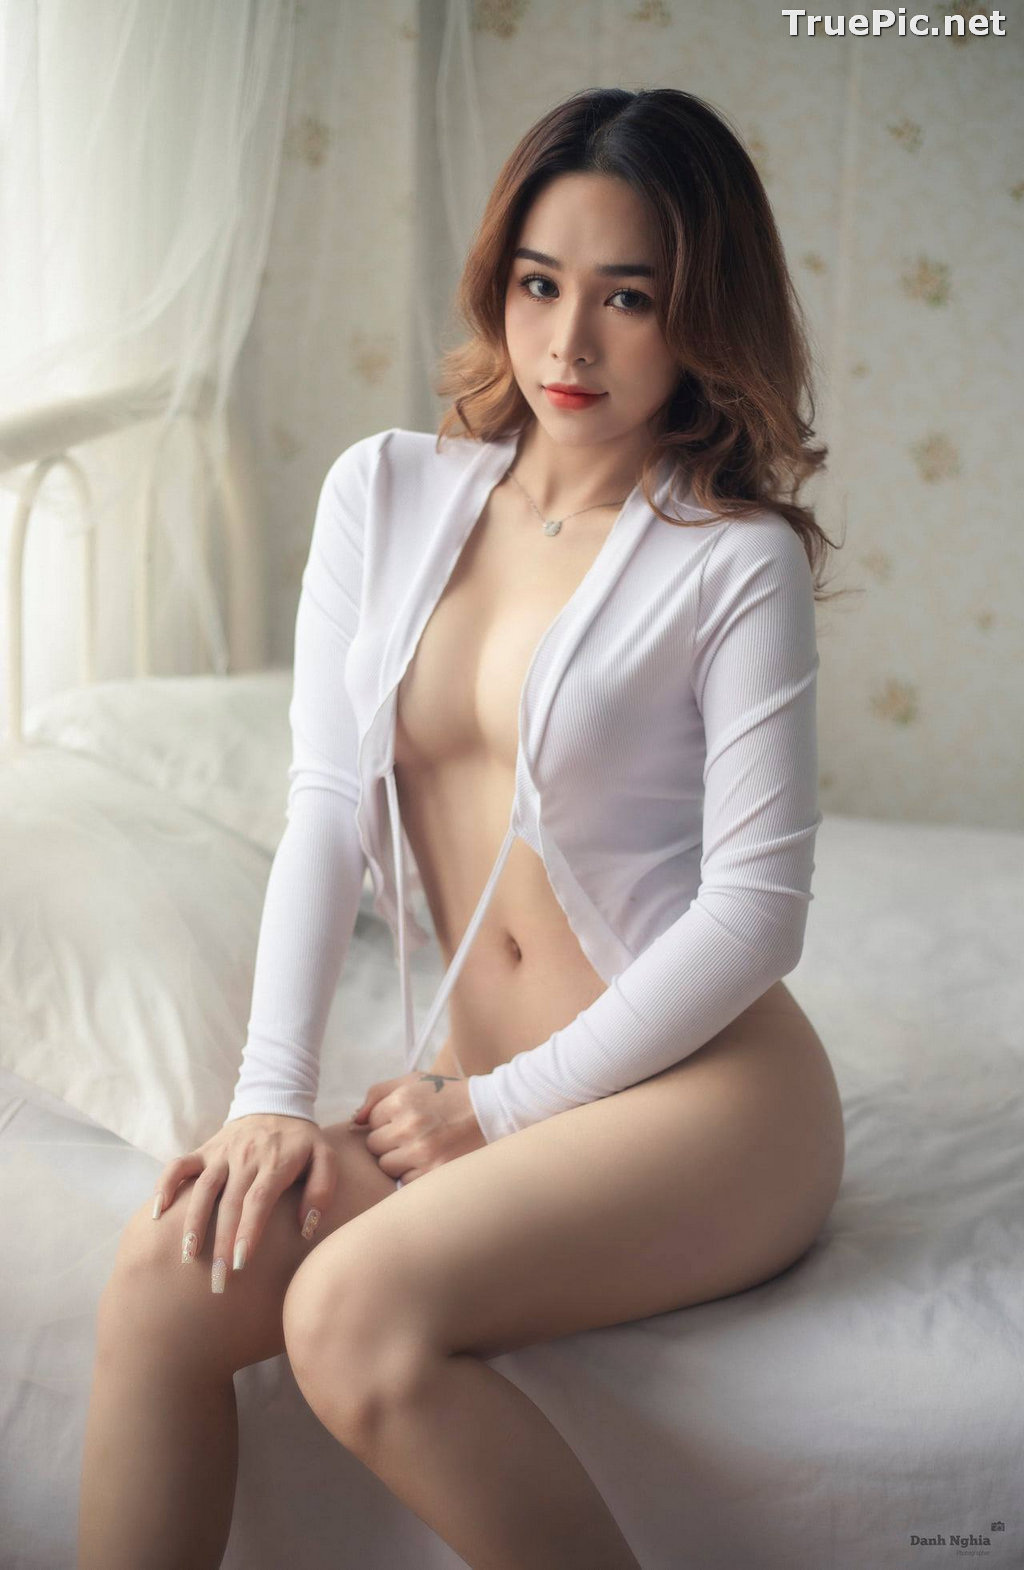 Image Vietnamese Sexy Model - Beautiful Body Curves - TruePic.net - Picture-5